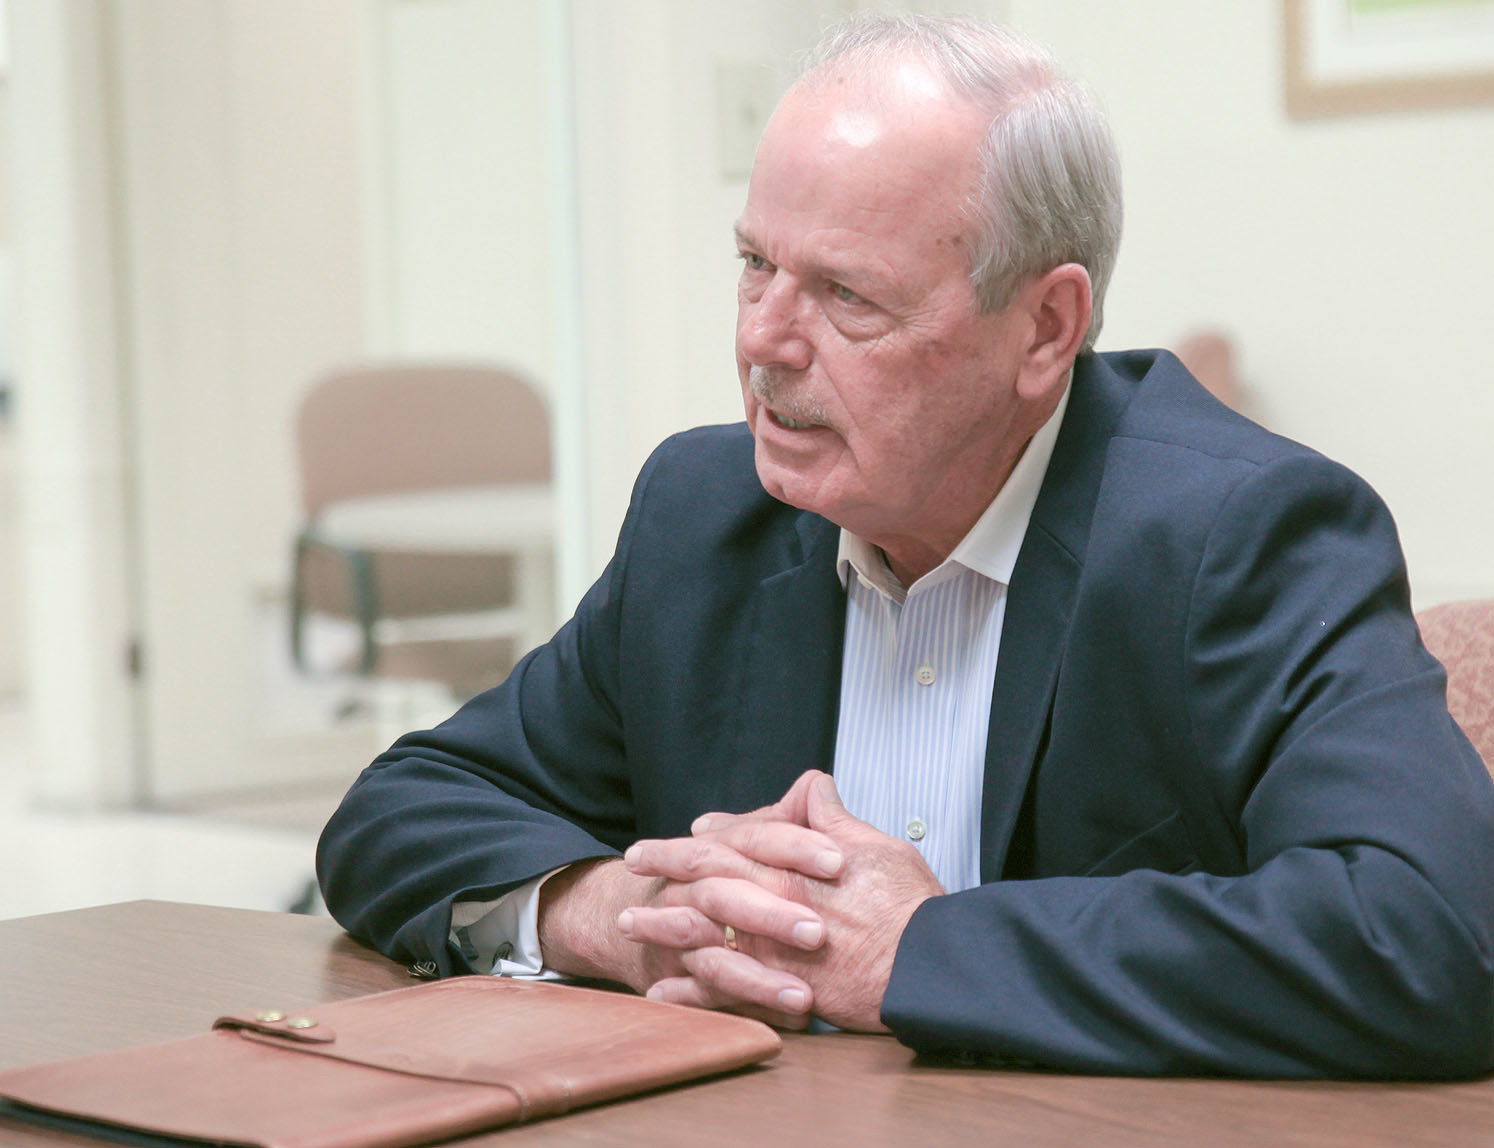 BRADLEY COUNTY SHERIFF-ELECT Steve Lawson discusses his activities since the May 1 election, and his vision for the Bradley County Sheriff's Office. His comments came during a recent one-on-one interview with the Cleveland Daily Banner.